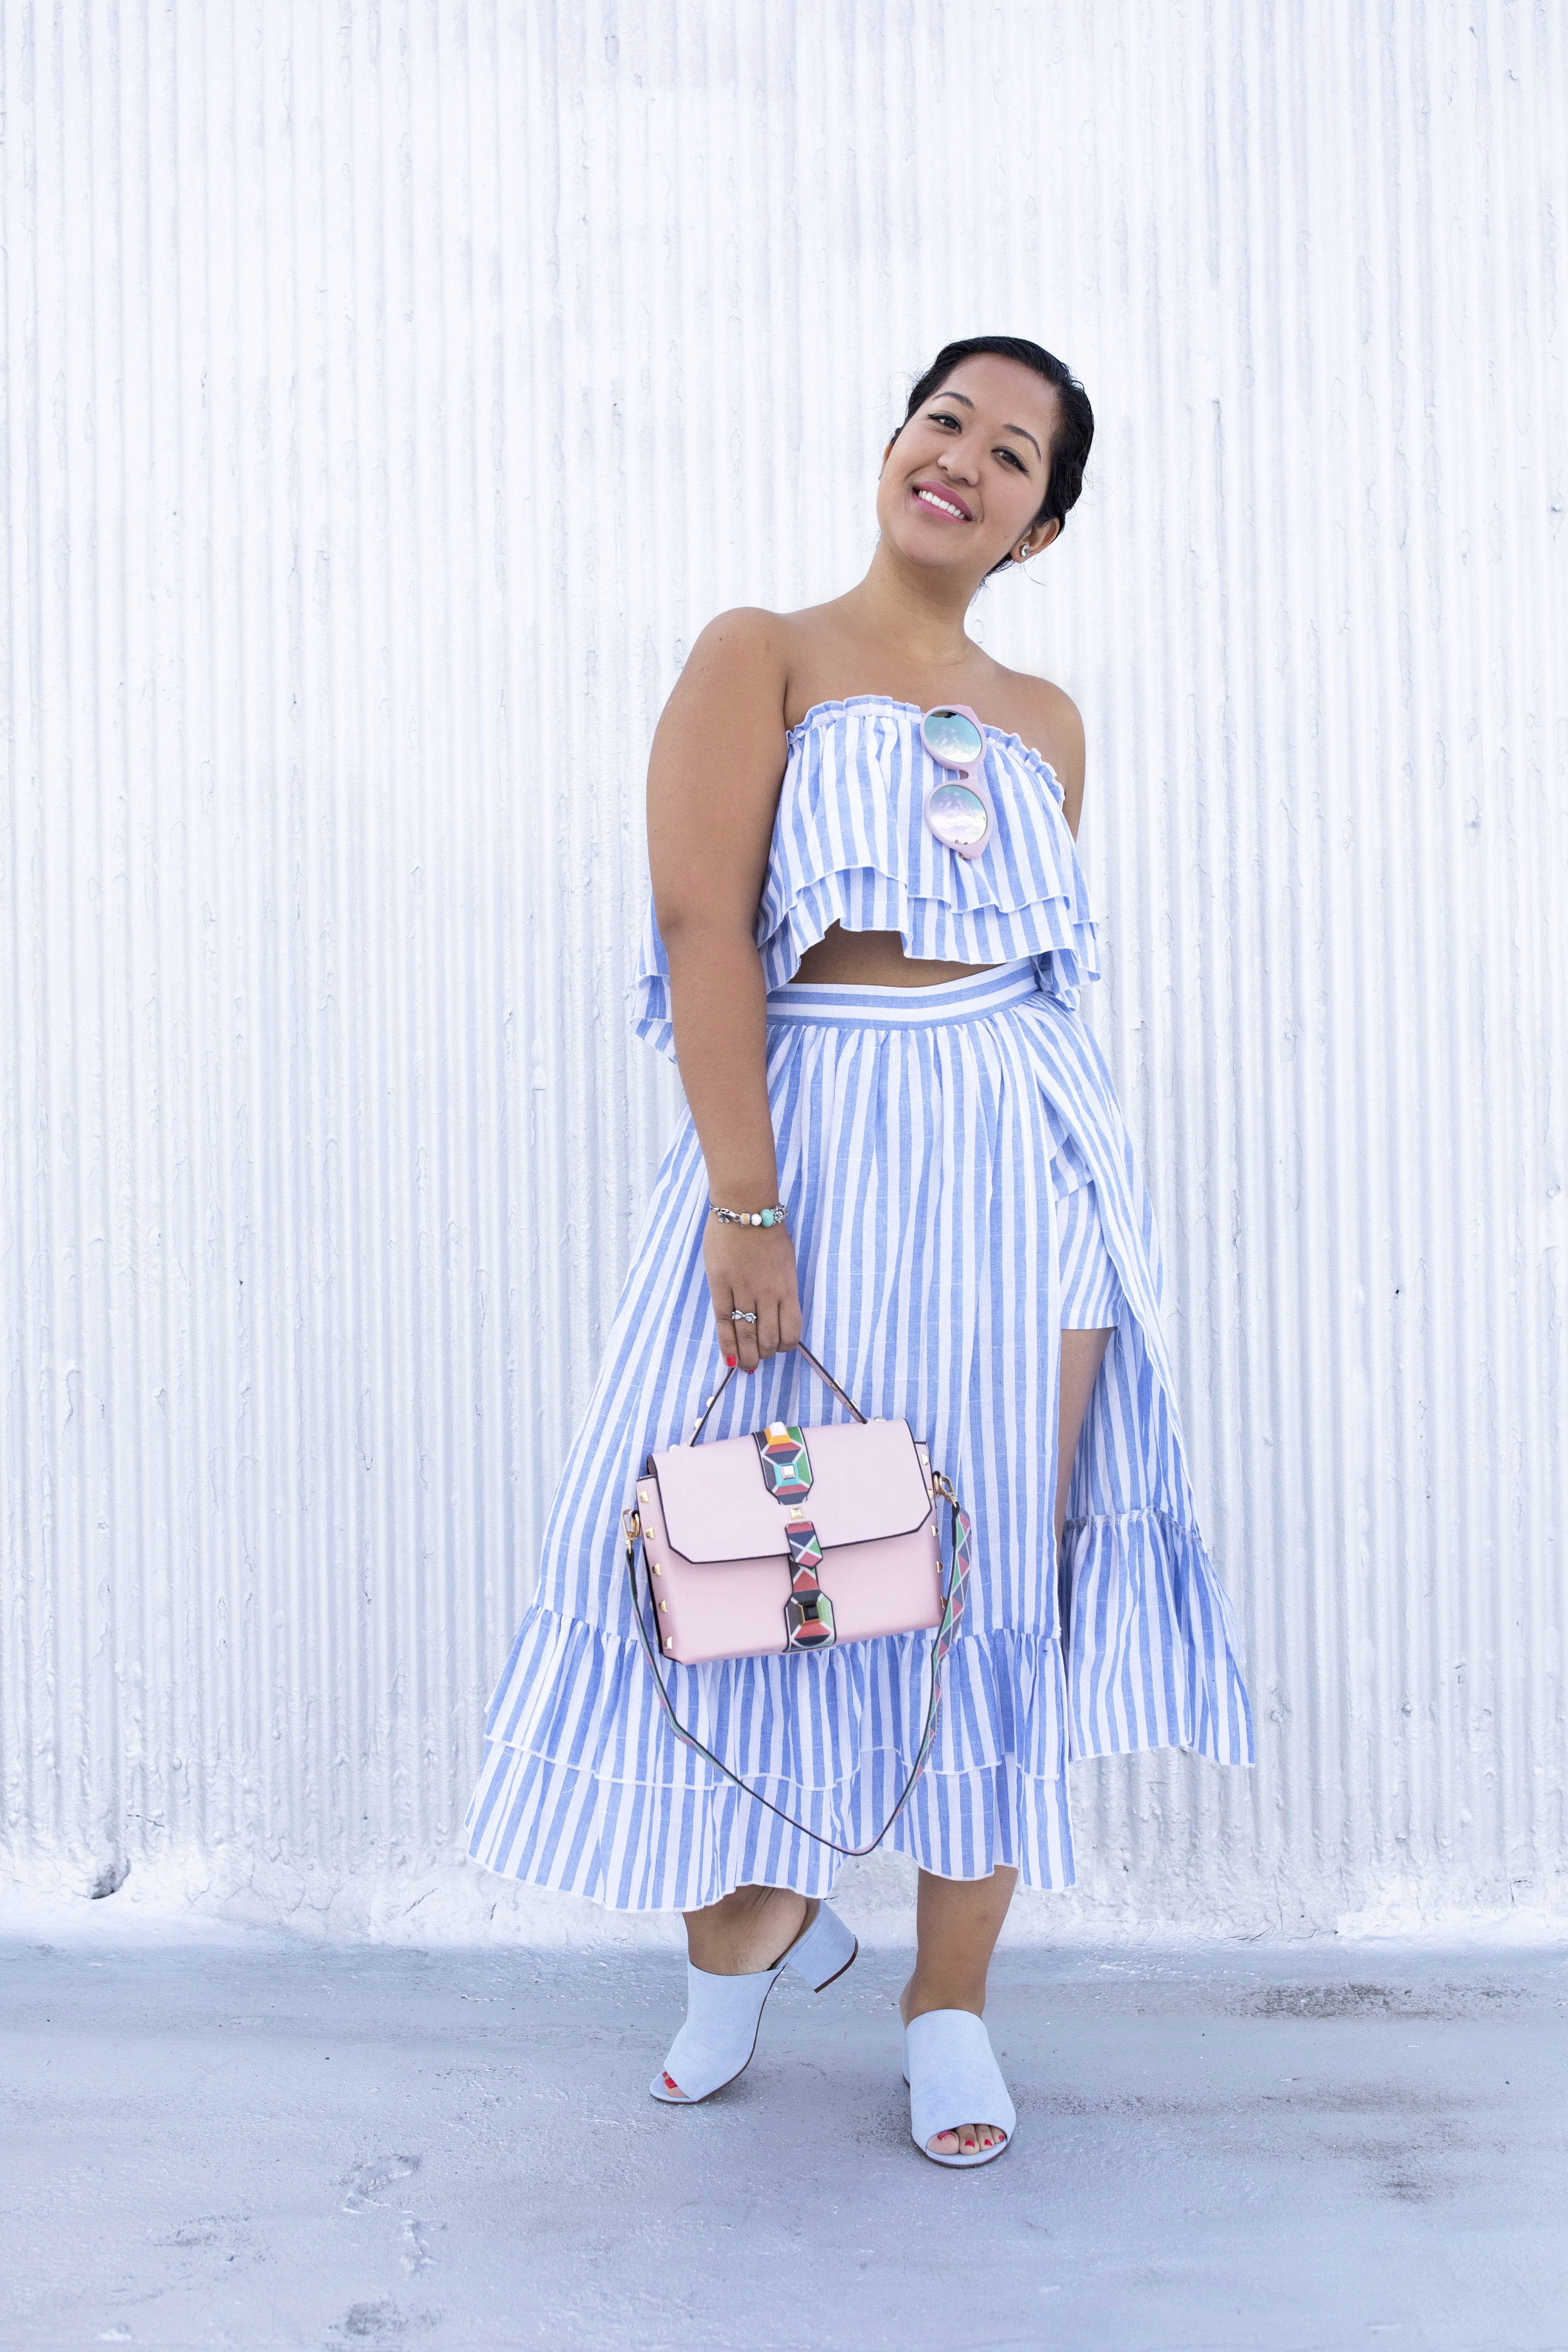 Krity S x SheIn x 2 piece stripped set9.jpg